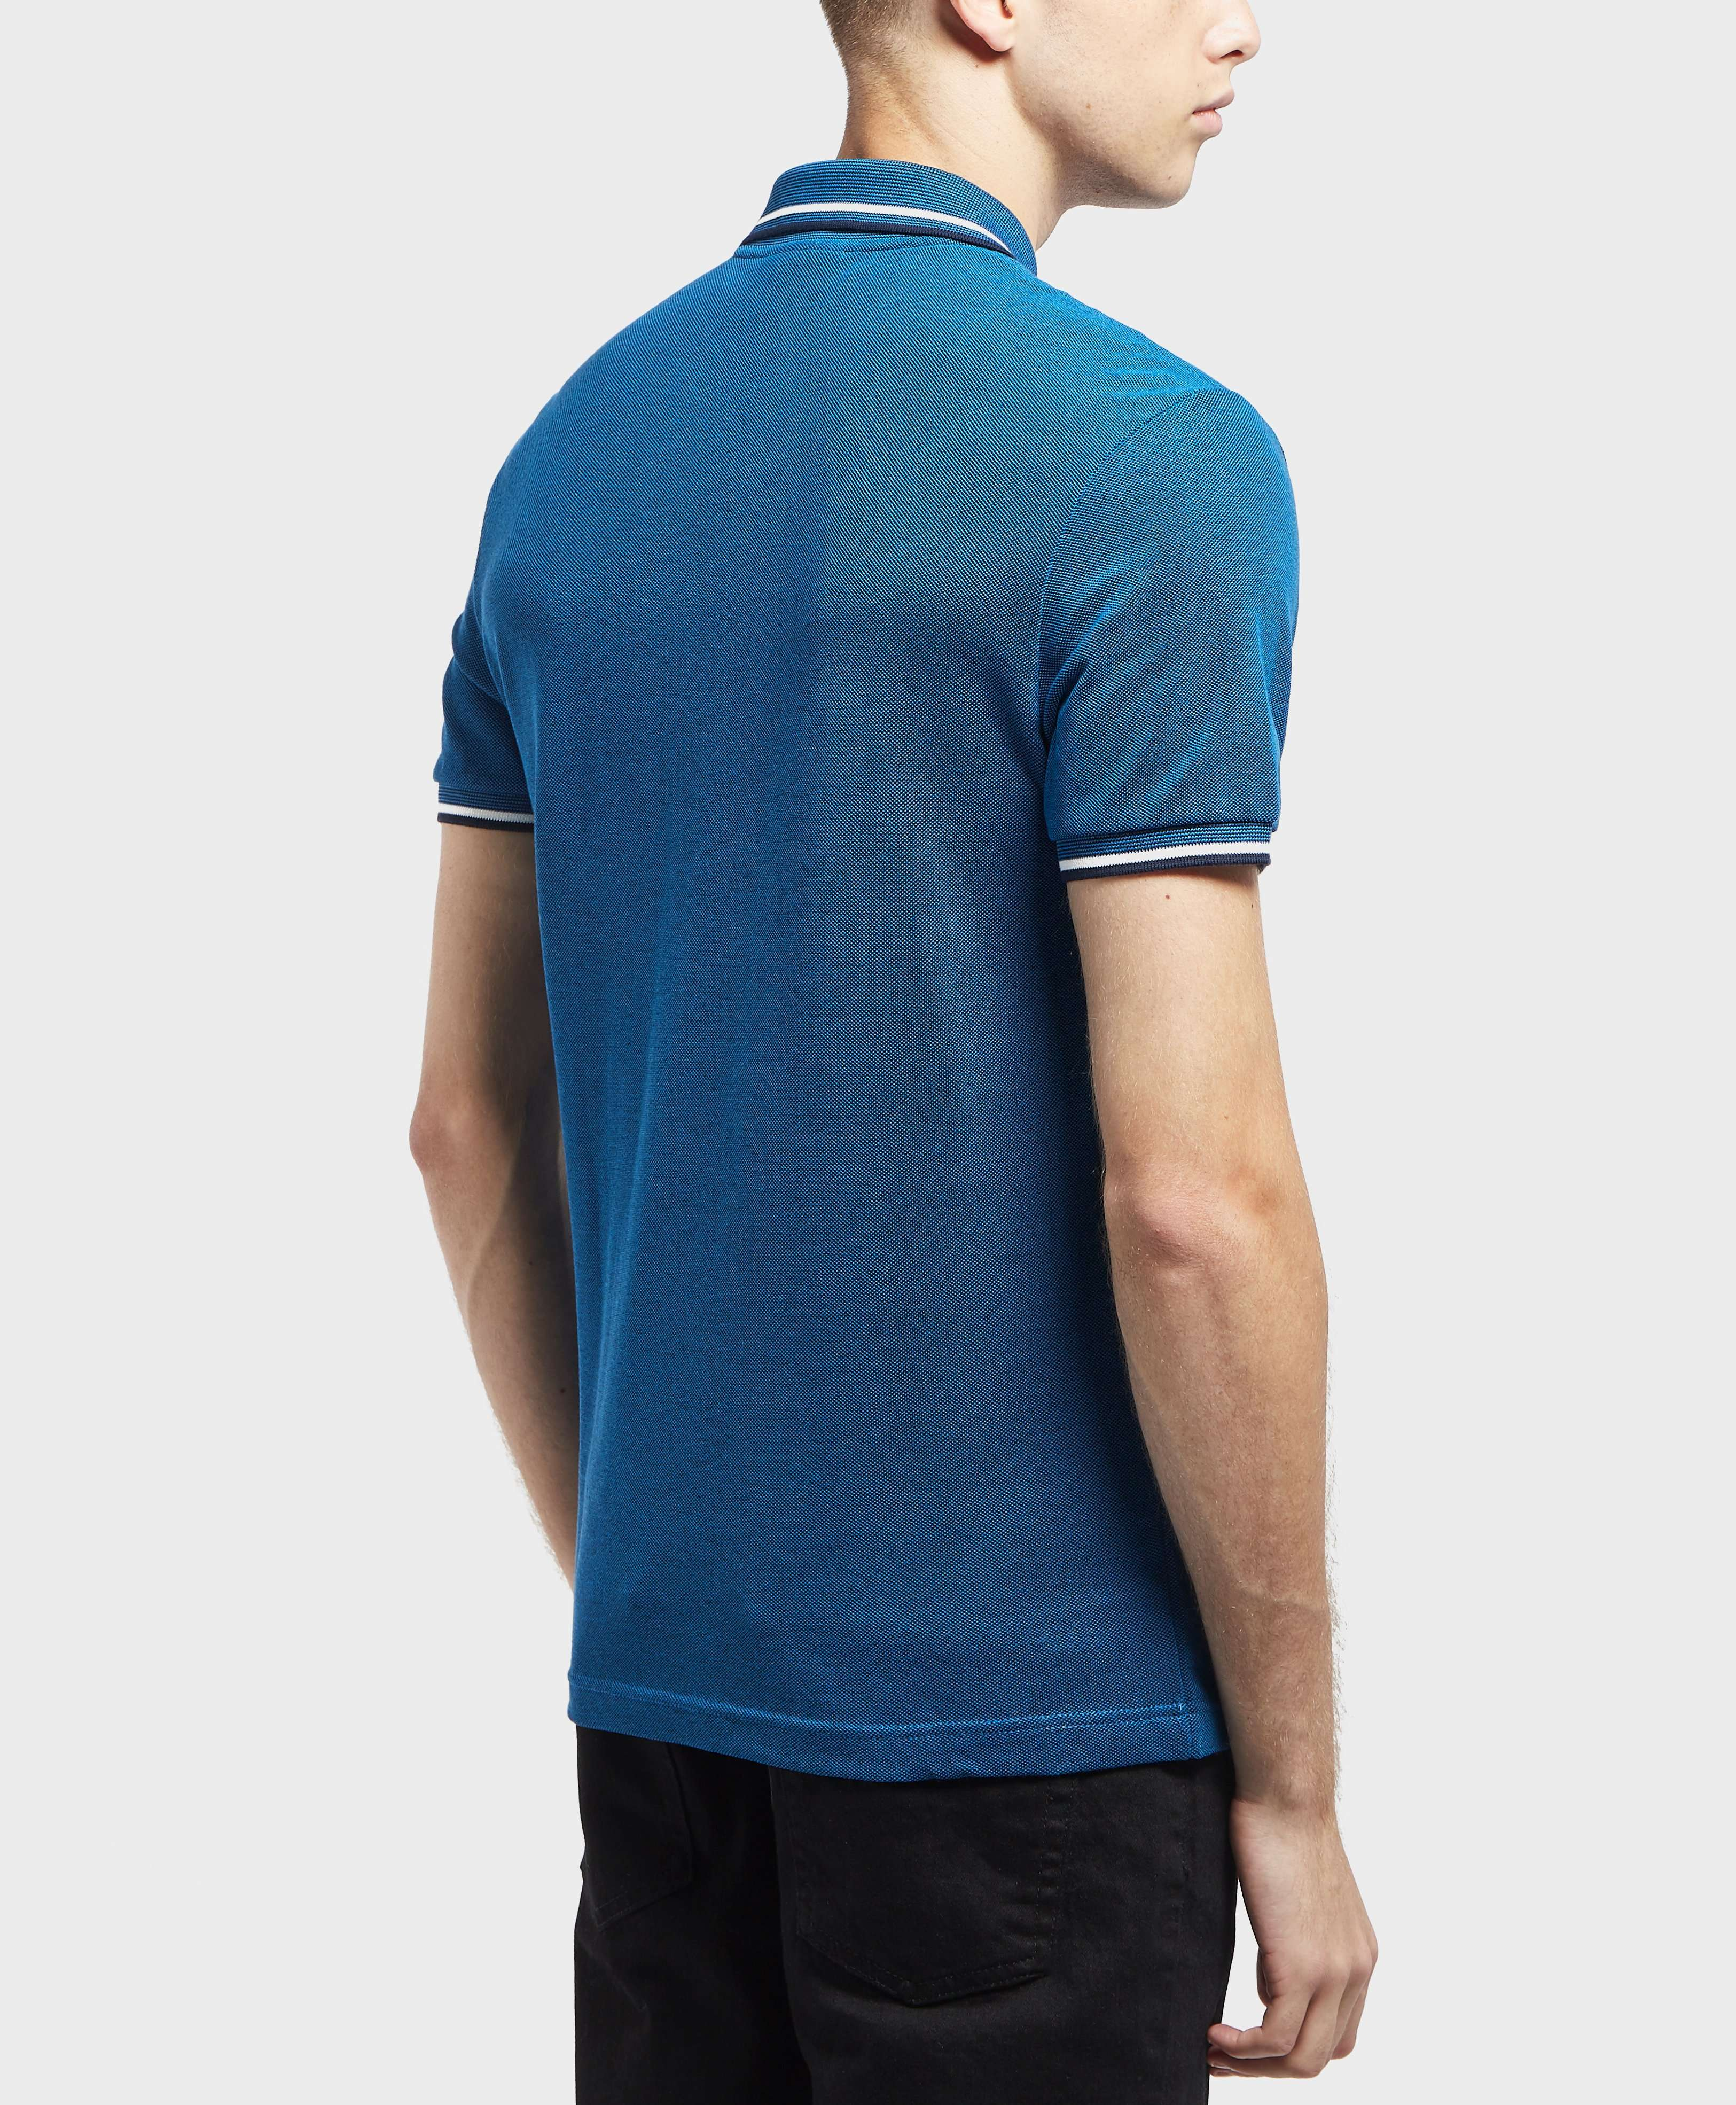 Lacoste Beye Tipped Short Sleeve Polo Shirt